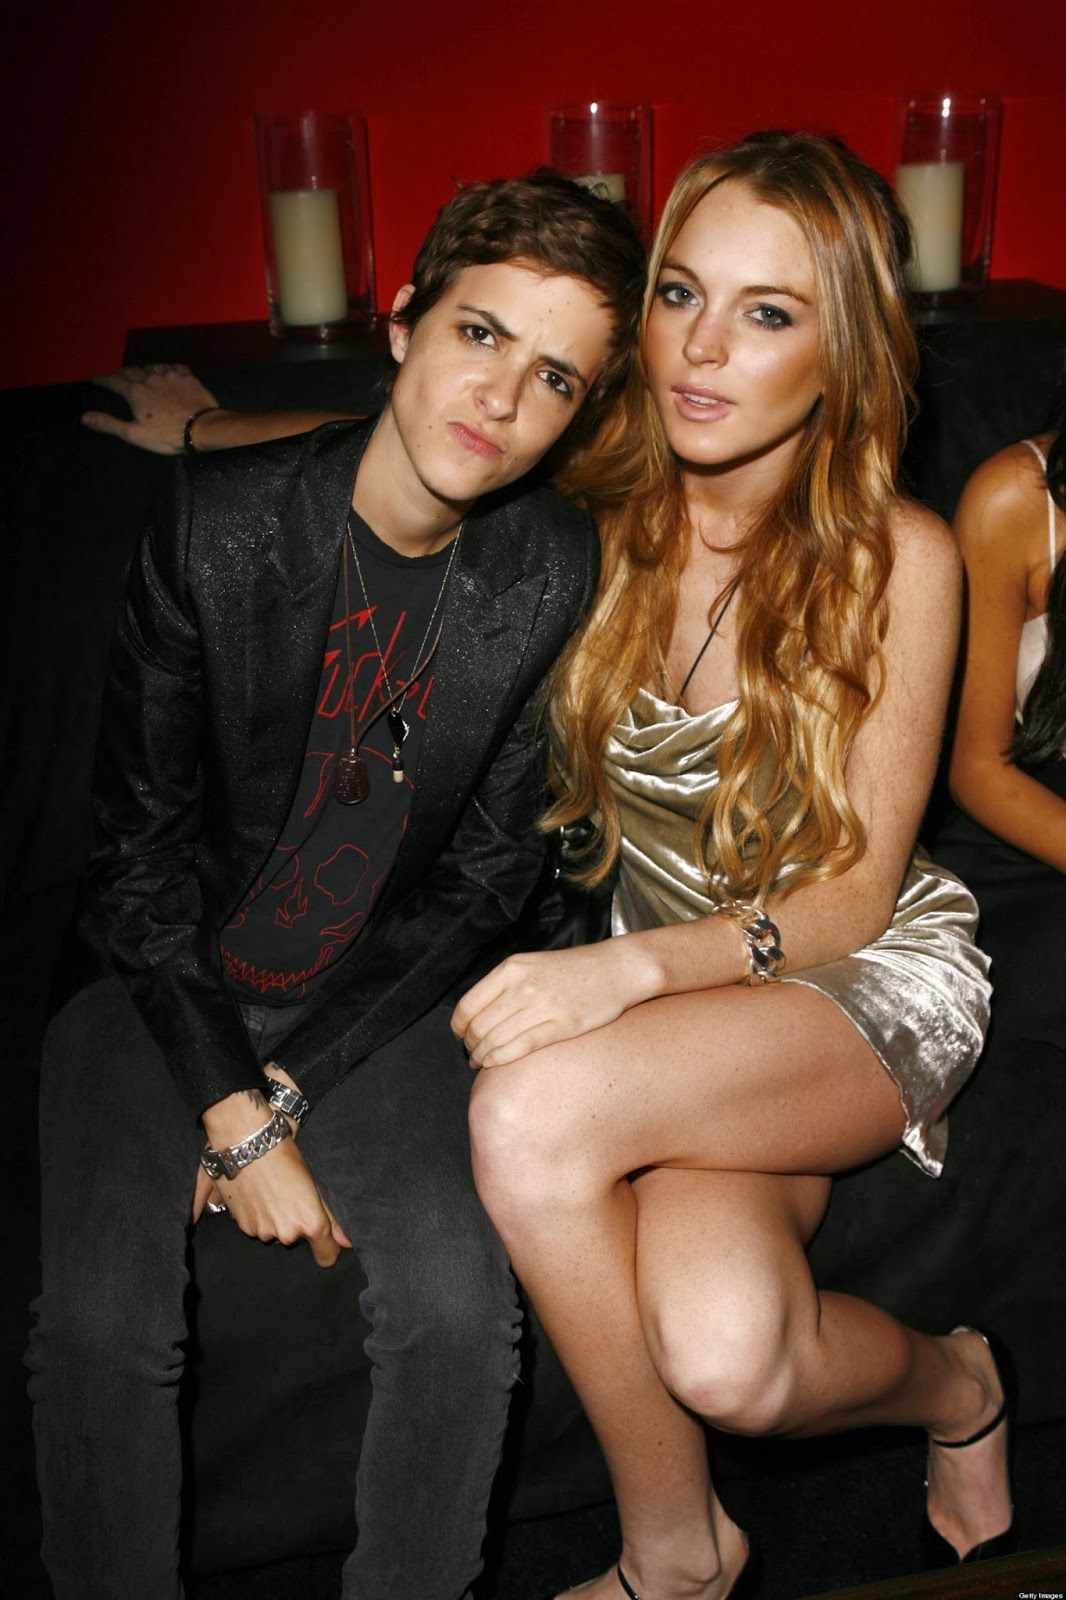 Lindsay Lohan And Her Girlfriend Pictures, Samantha Ronson 1